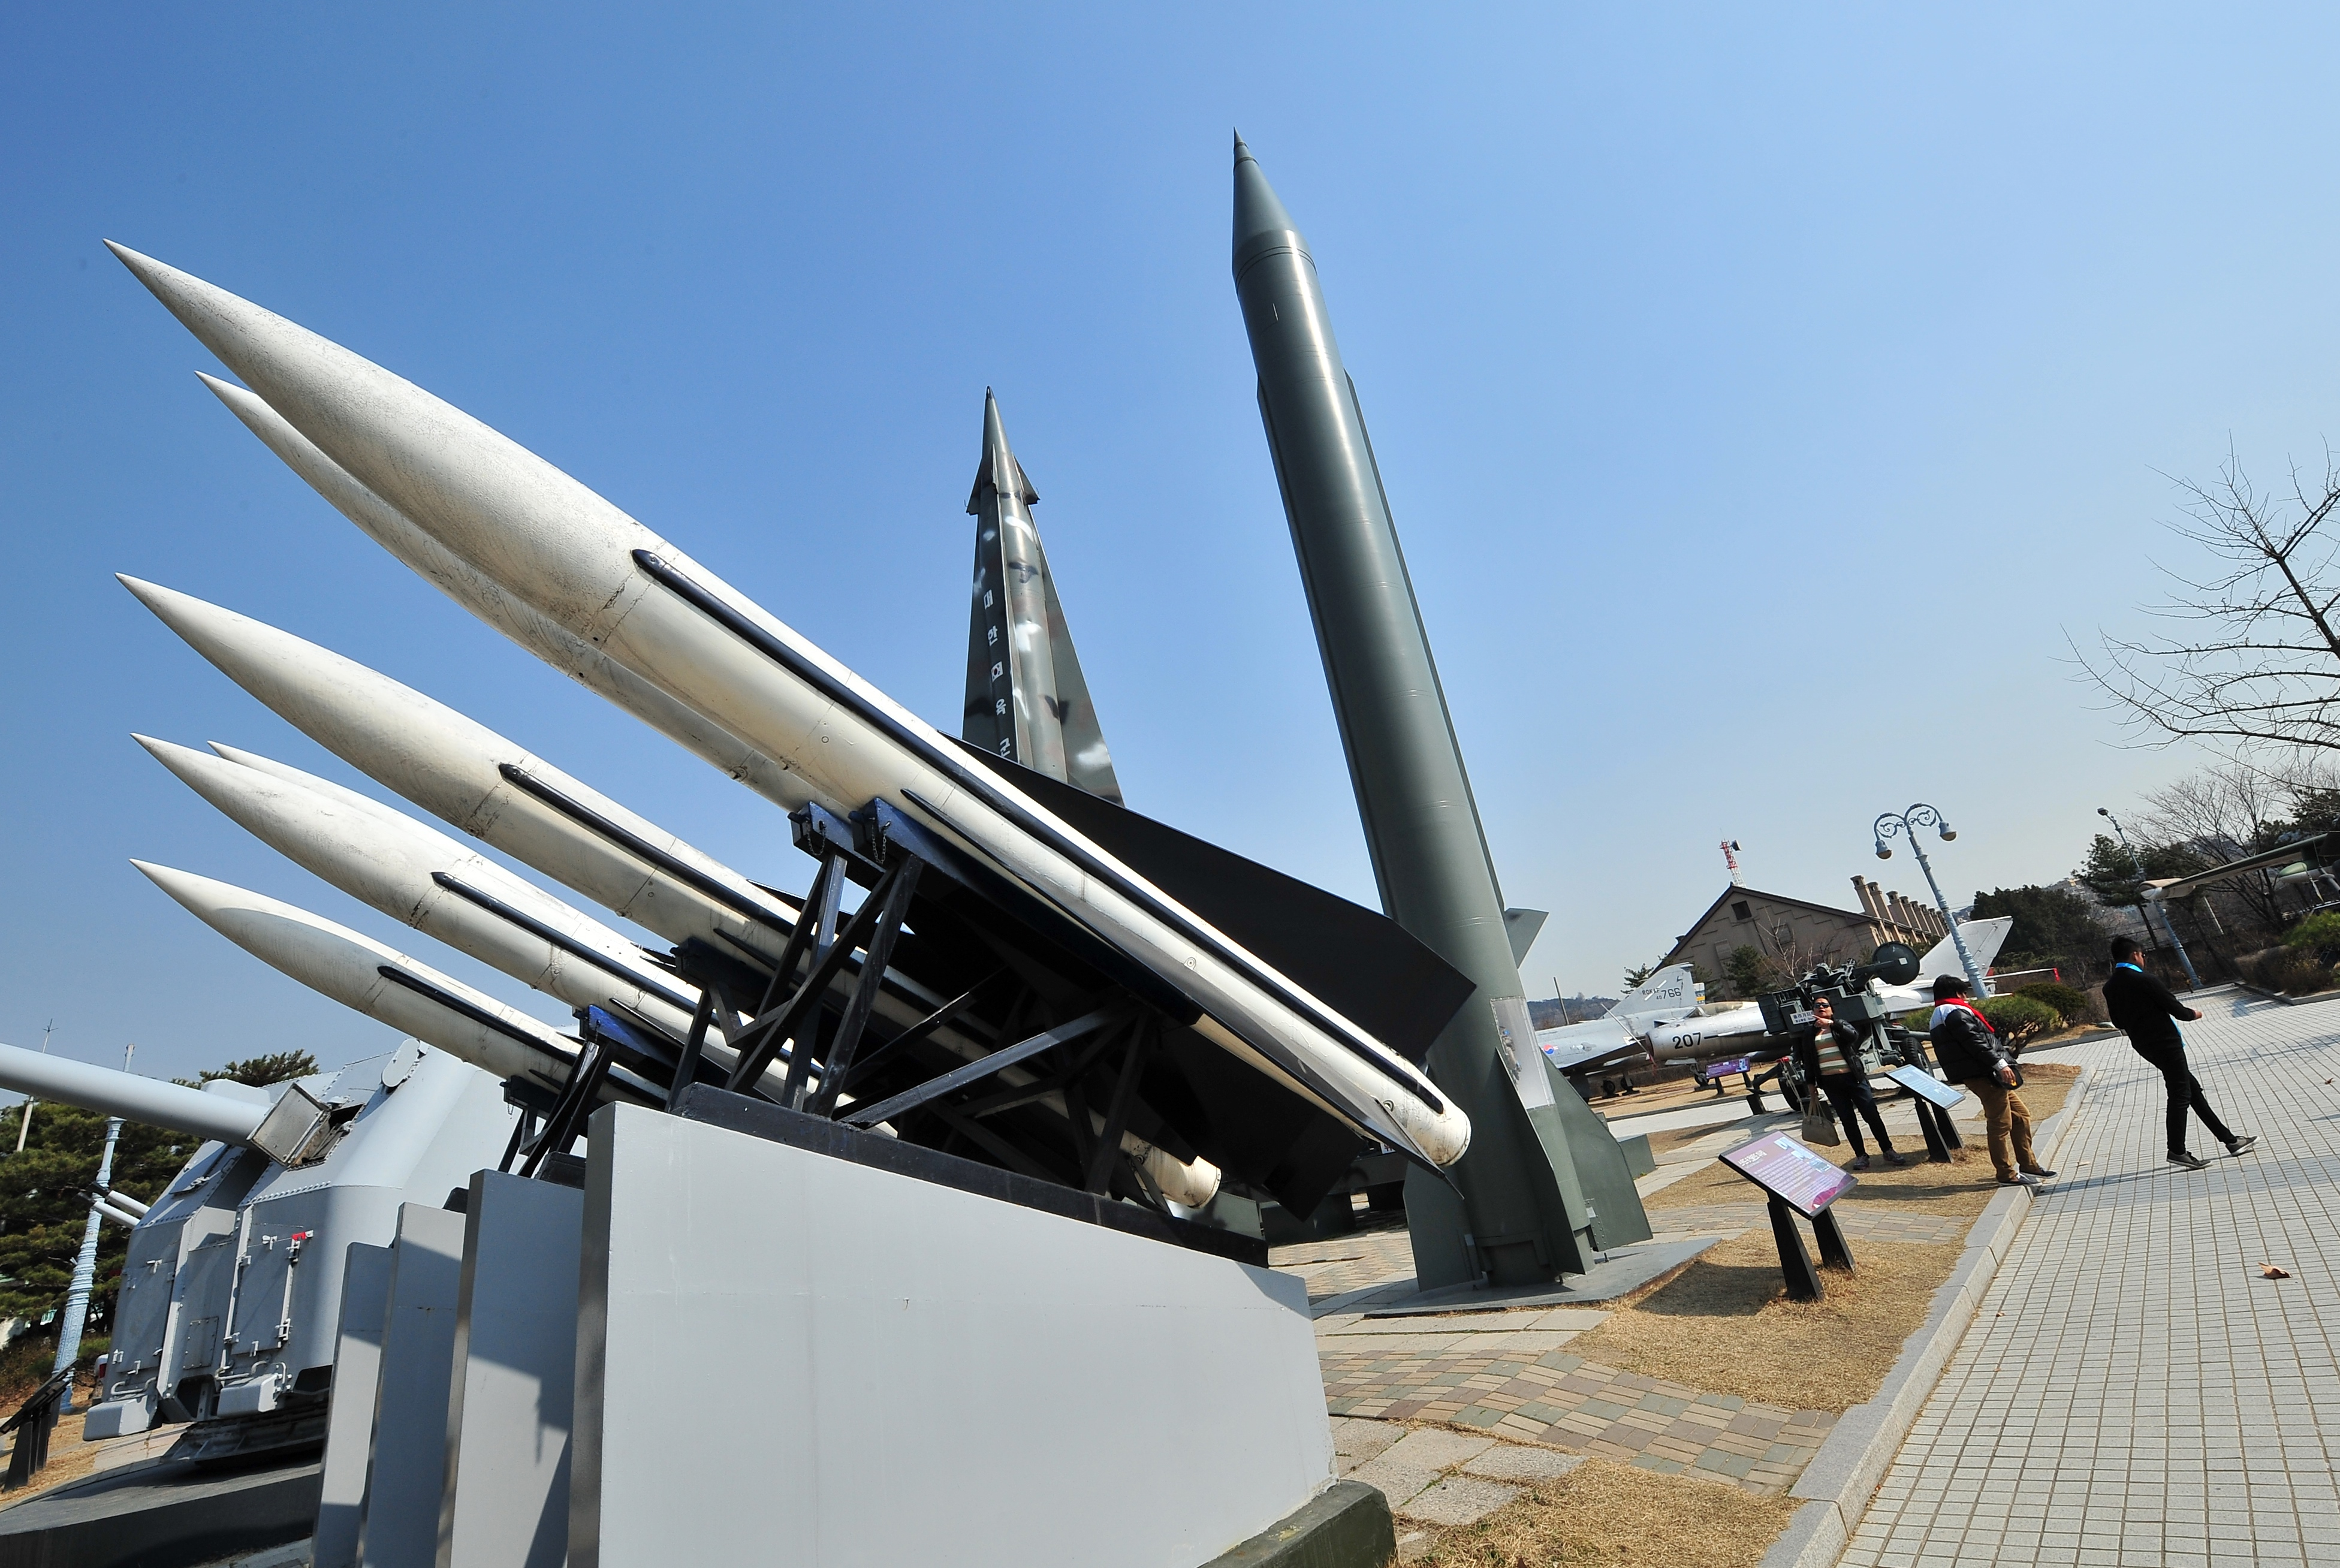 Visitors walk past replicas of a North Korean Scud-B missile, right, and South Korean Hawk surface-to-air missiles, left, at the Korean War Memorial in Seoul on March 3, 2014